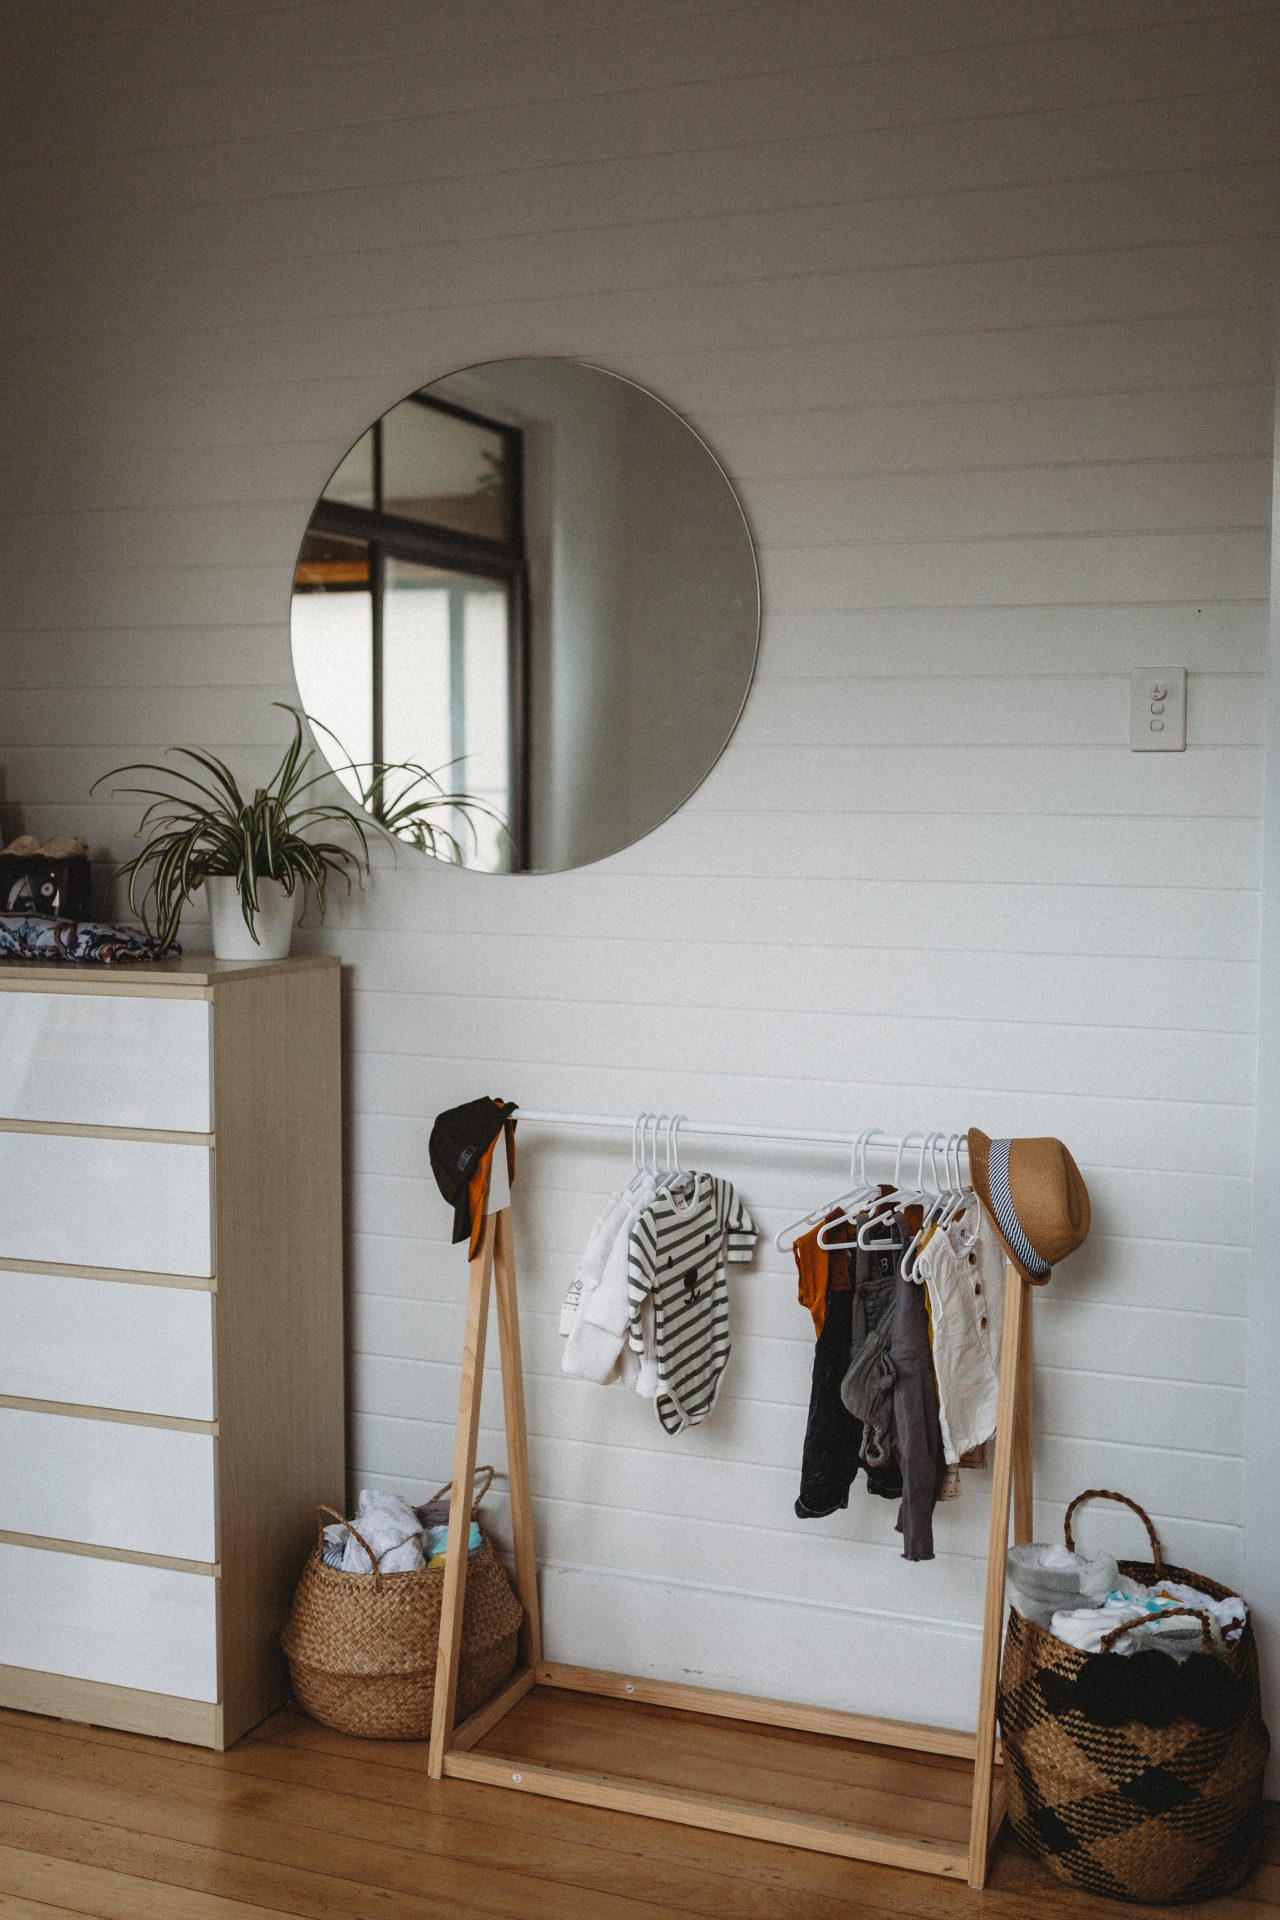 Mini clothes rack with baby clothes hanging on it, with a circular mirror on the wall above